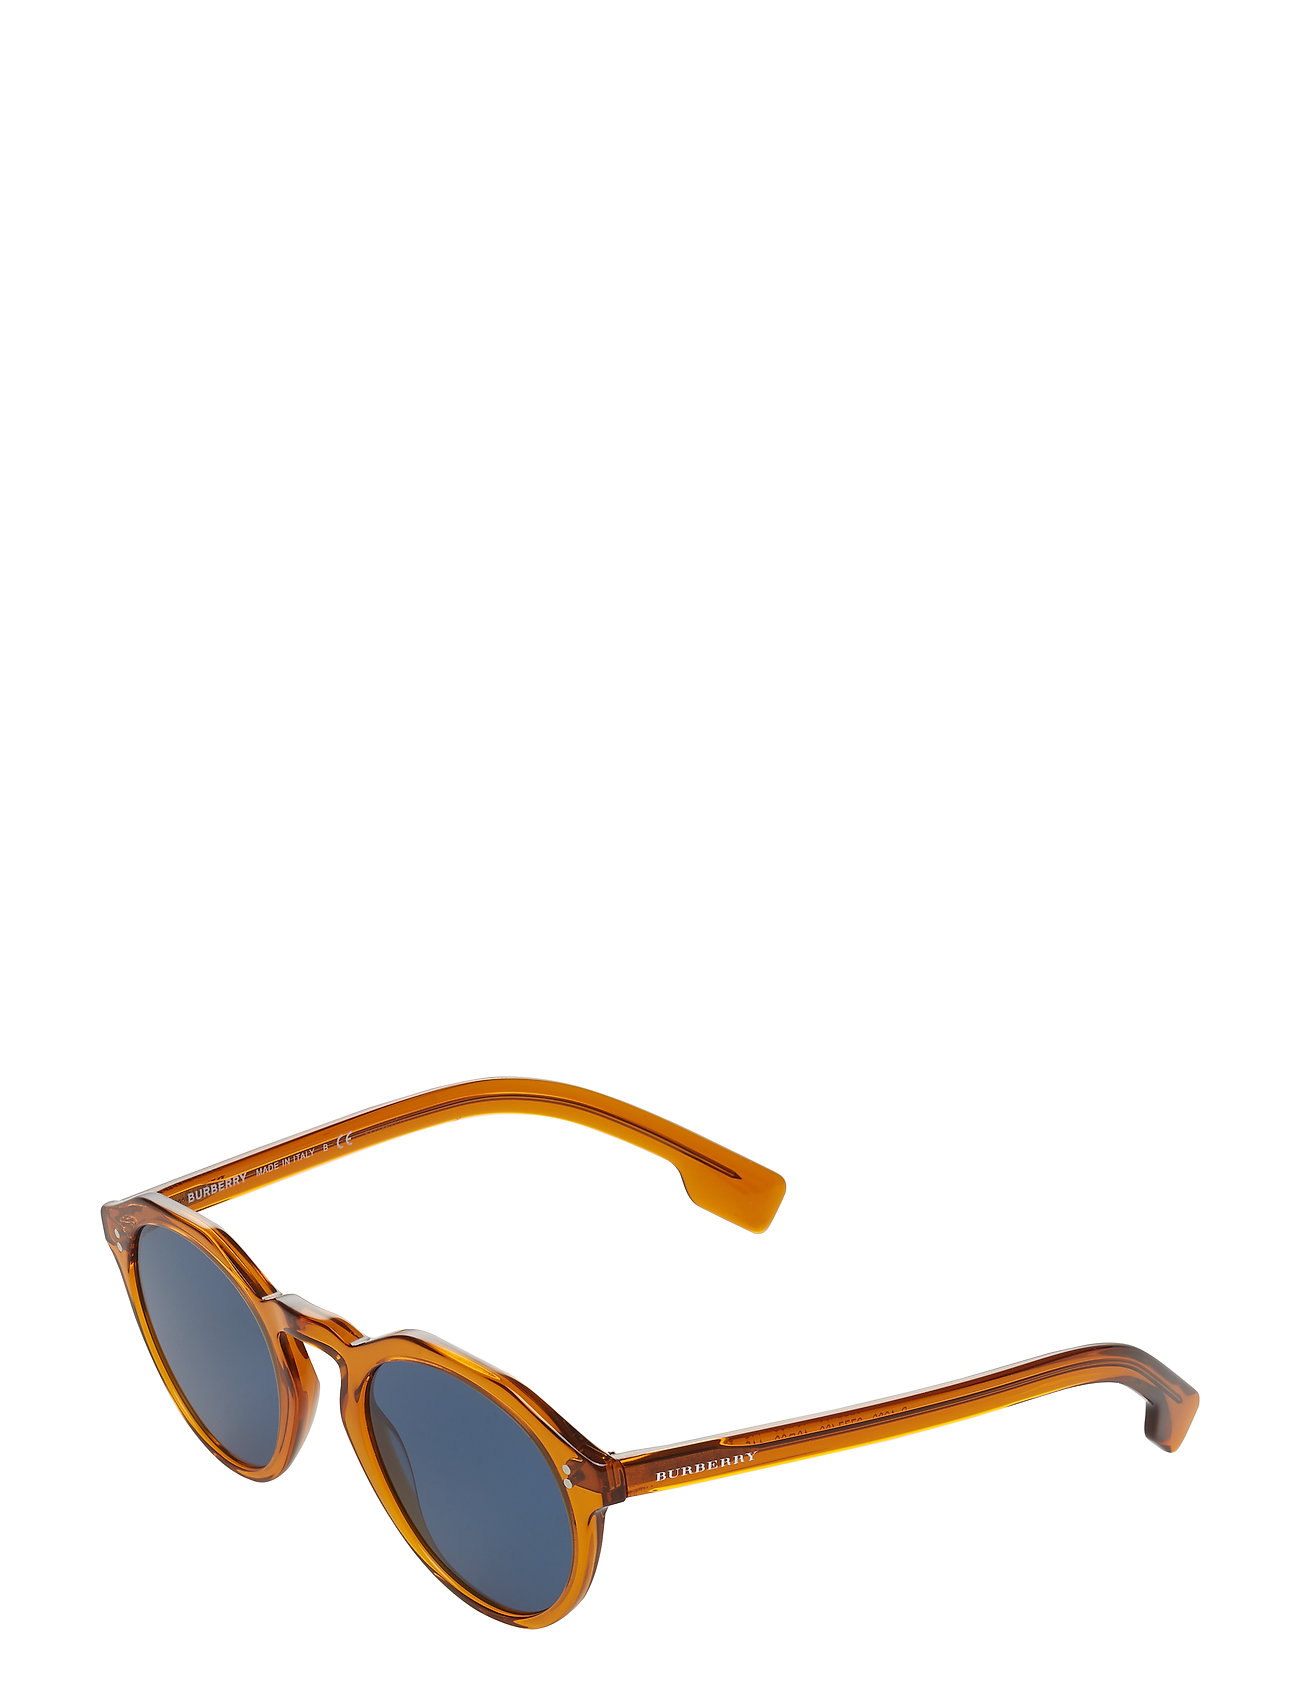 0be4280 Solbriller Guld BURBERRY SUNGLASSES